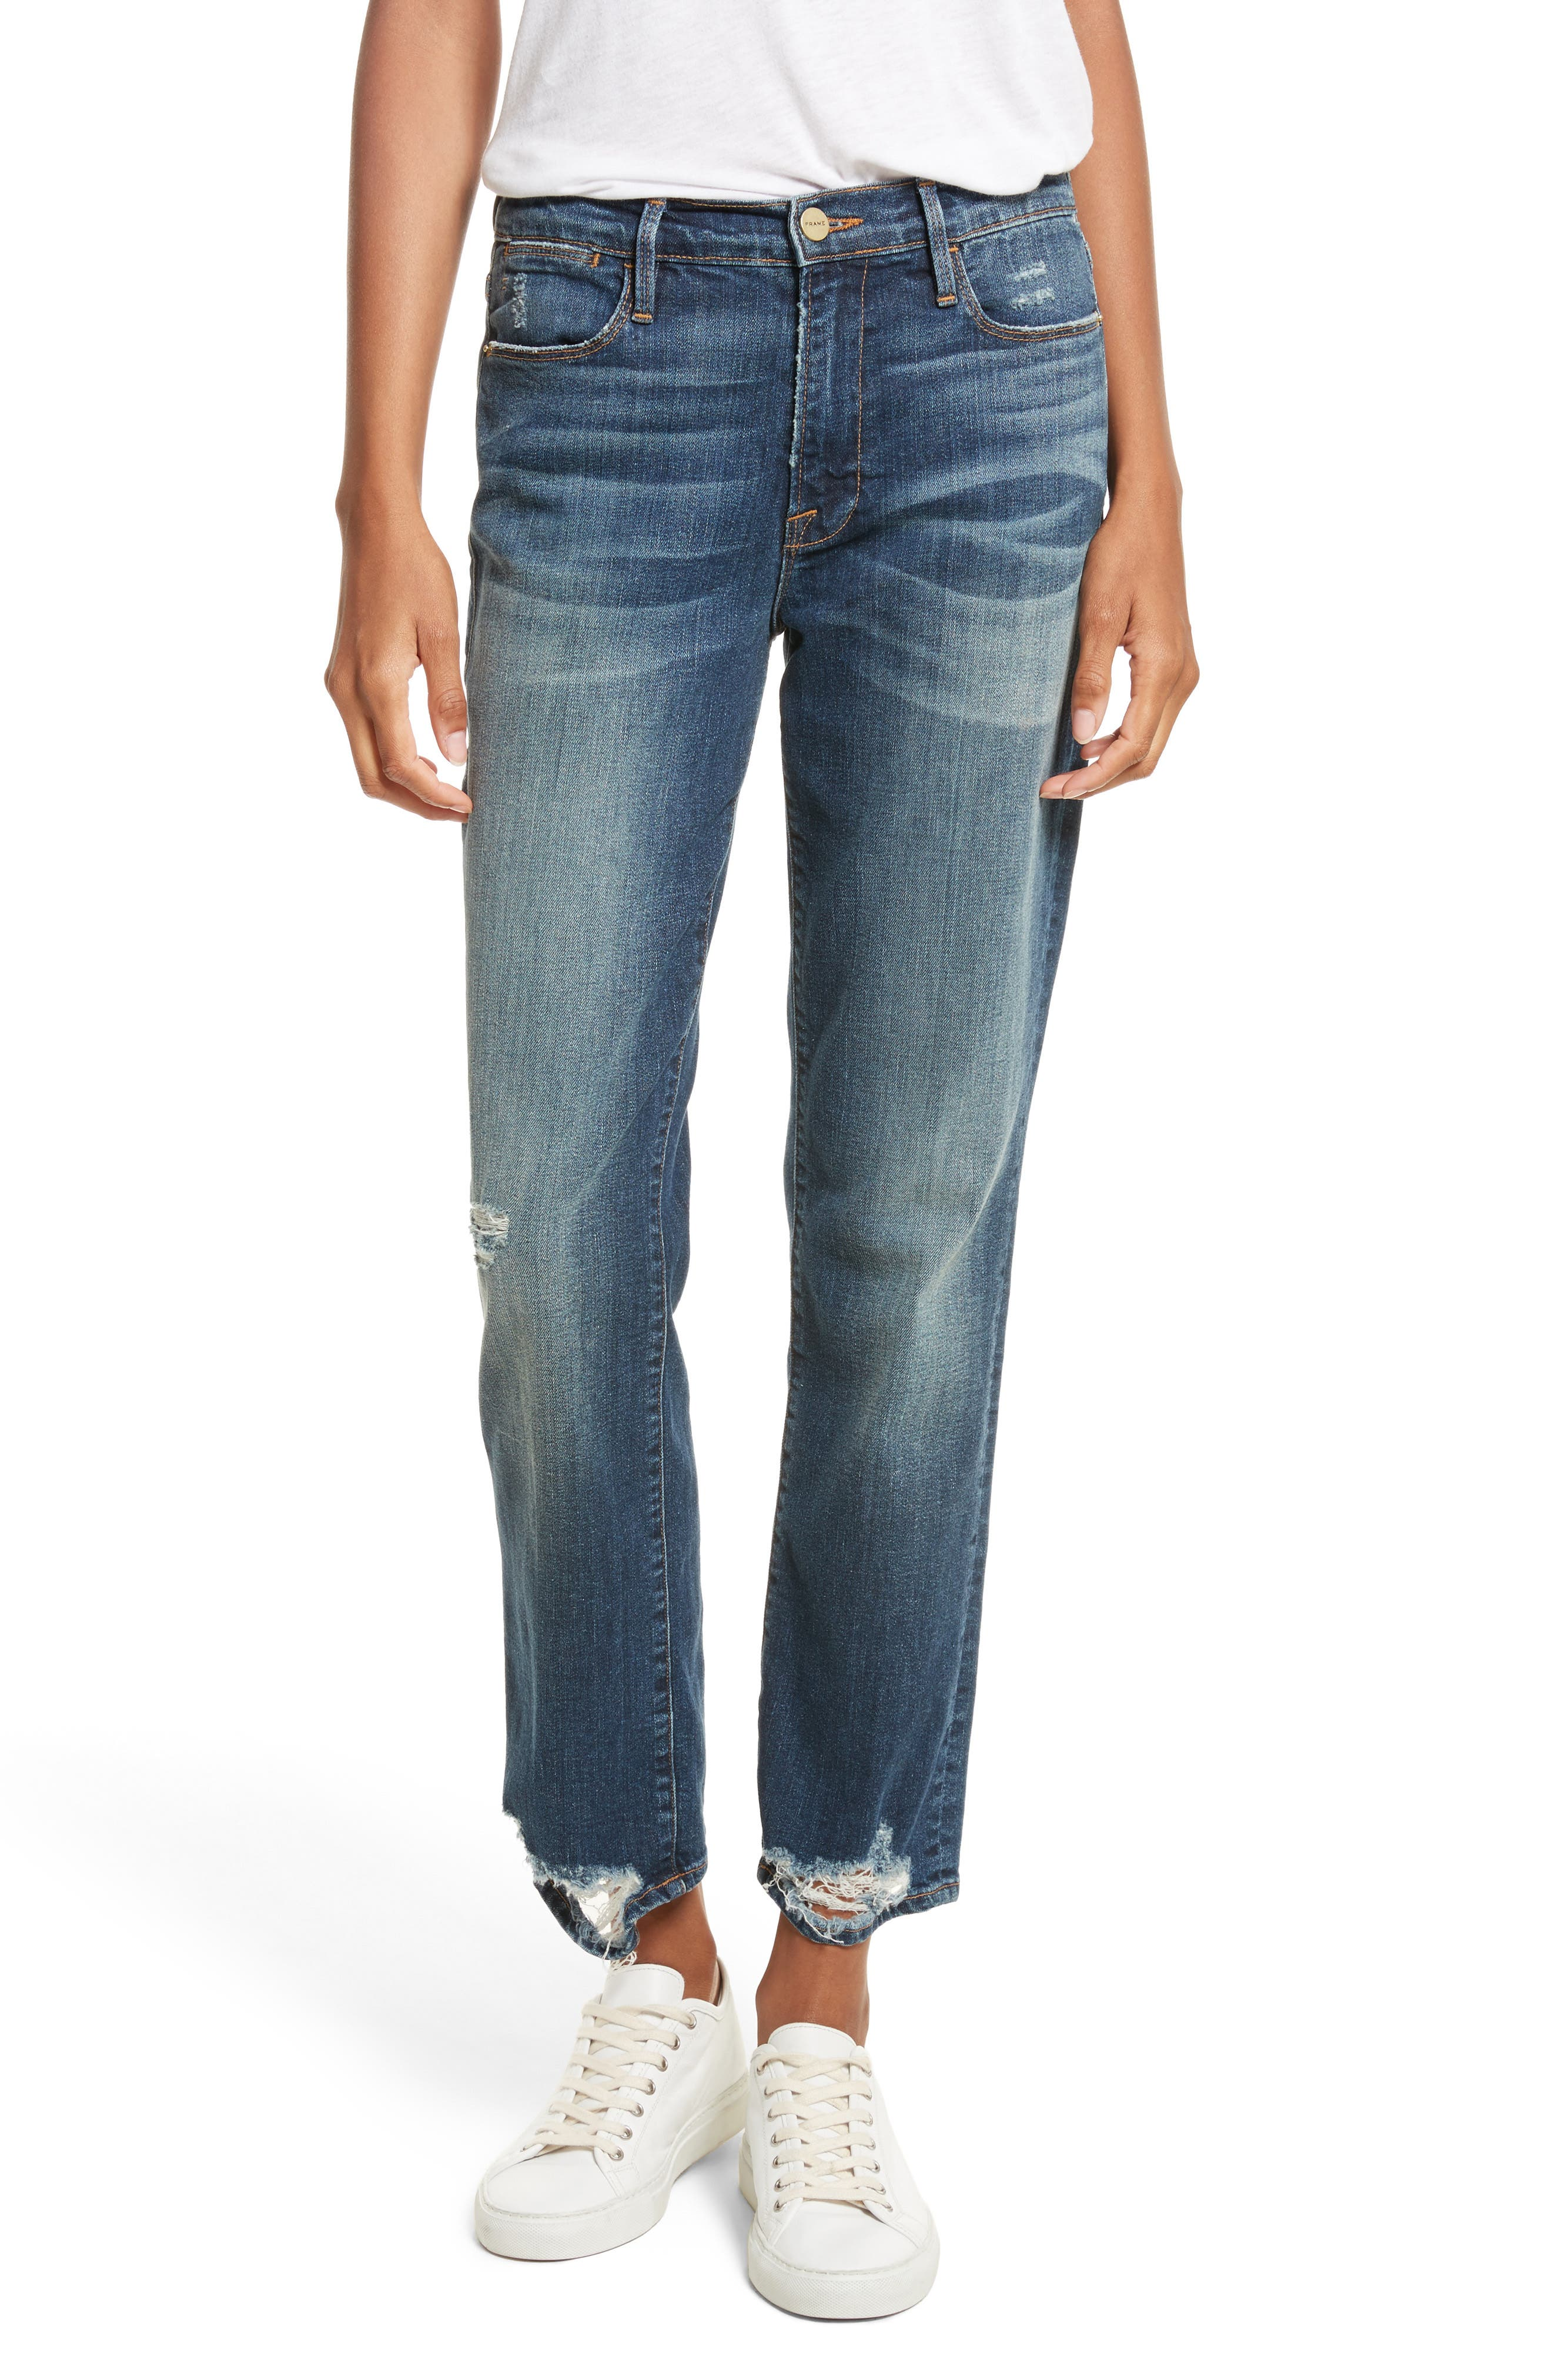 Alternate Image 1 Selected - FRAME Le High Straight High Rise Jeans (Randolph)